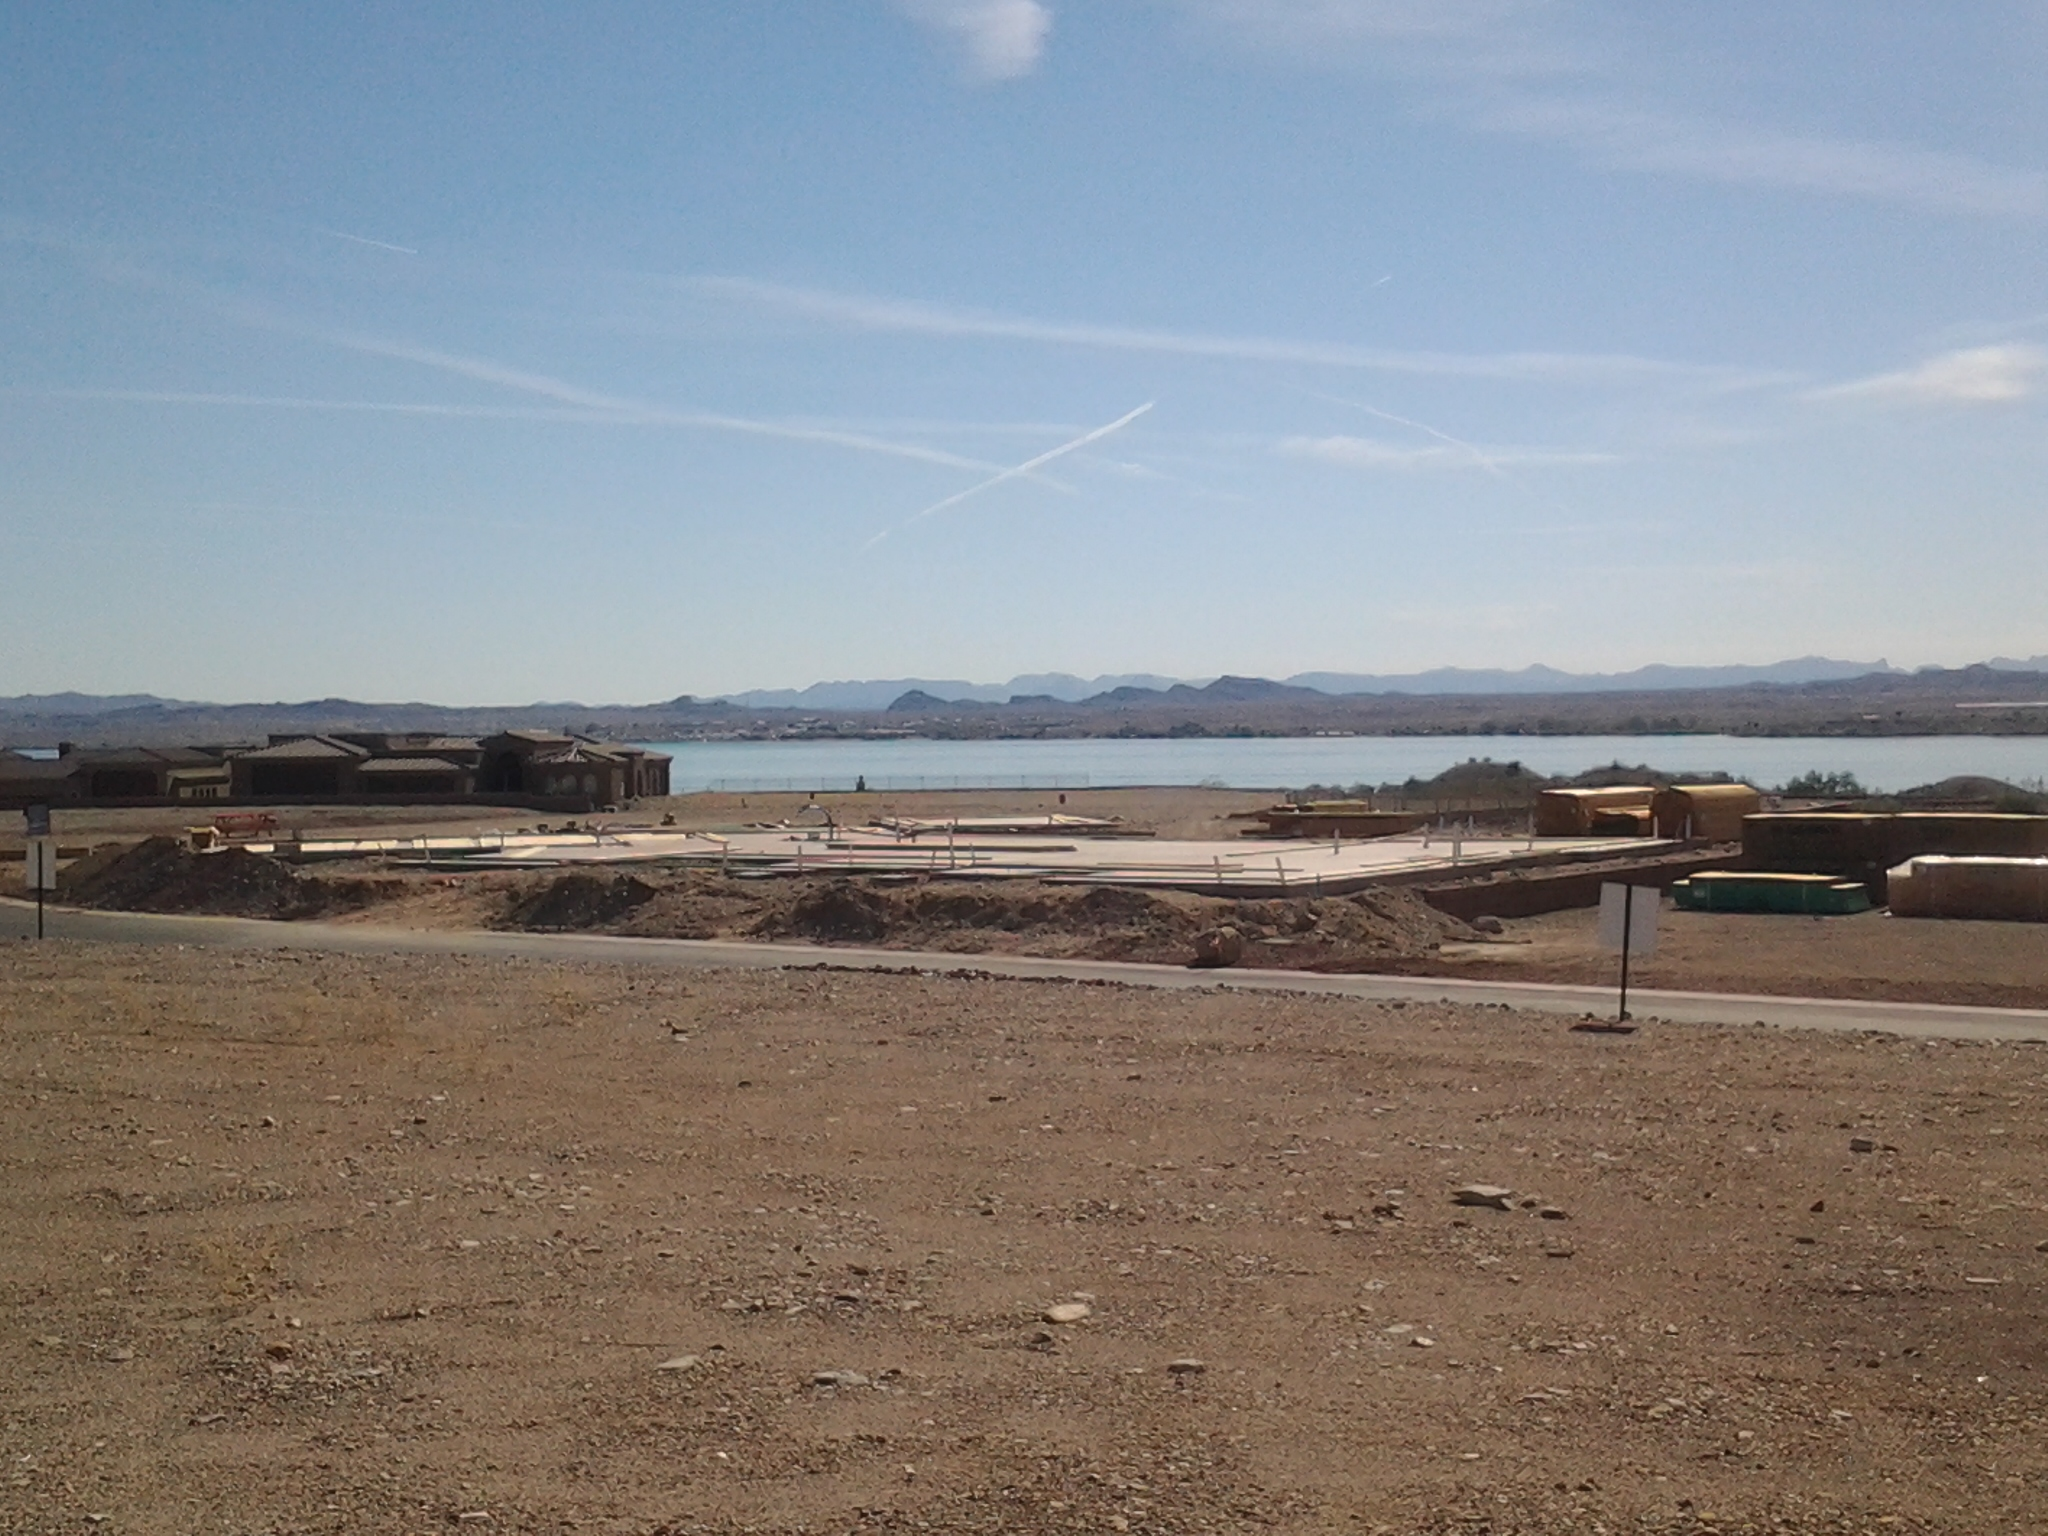 Land for sale in Lake Havasu City